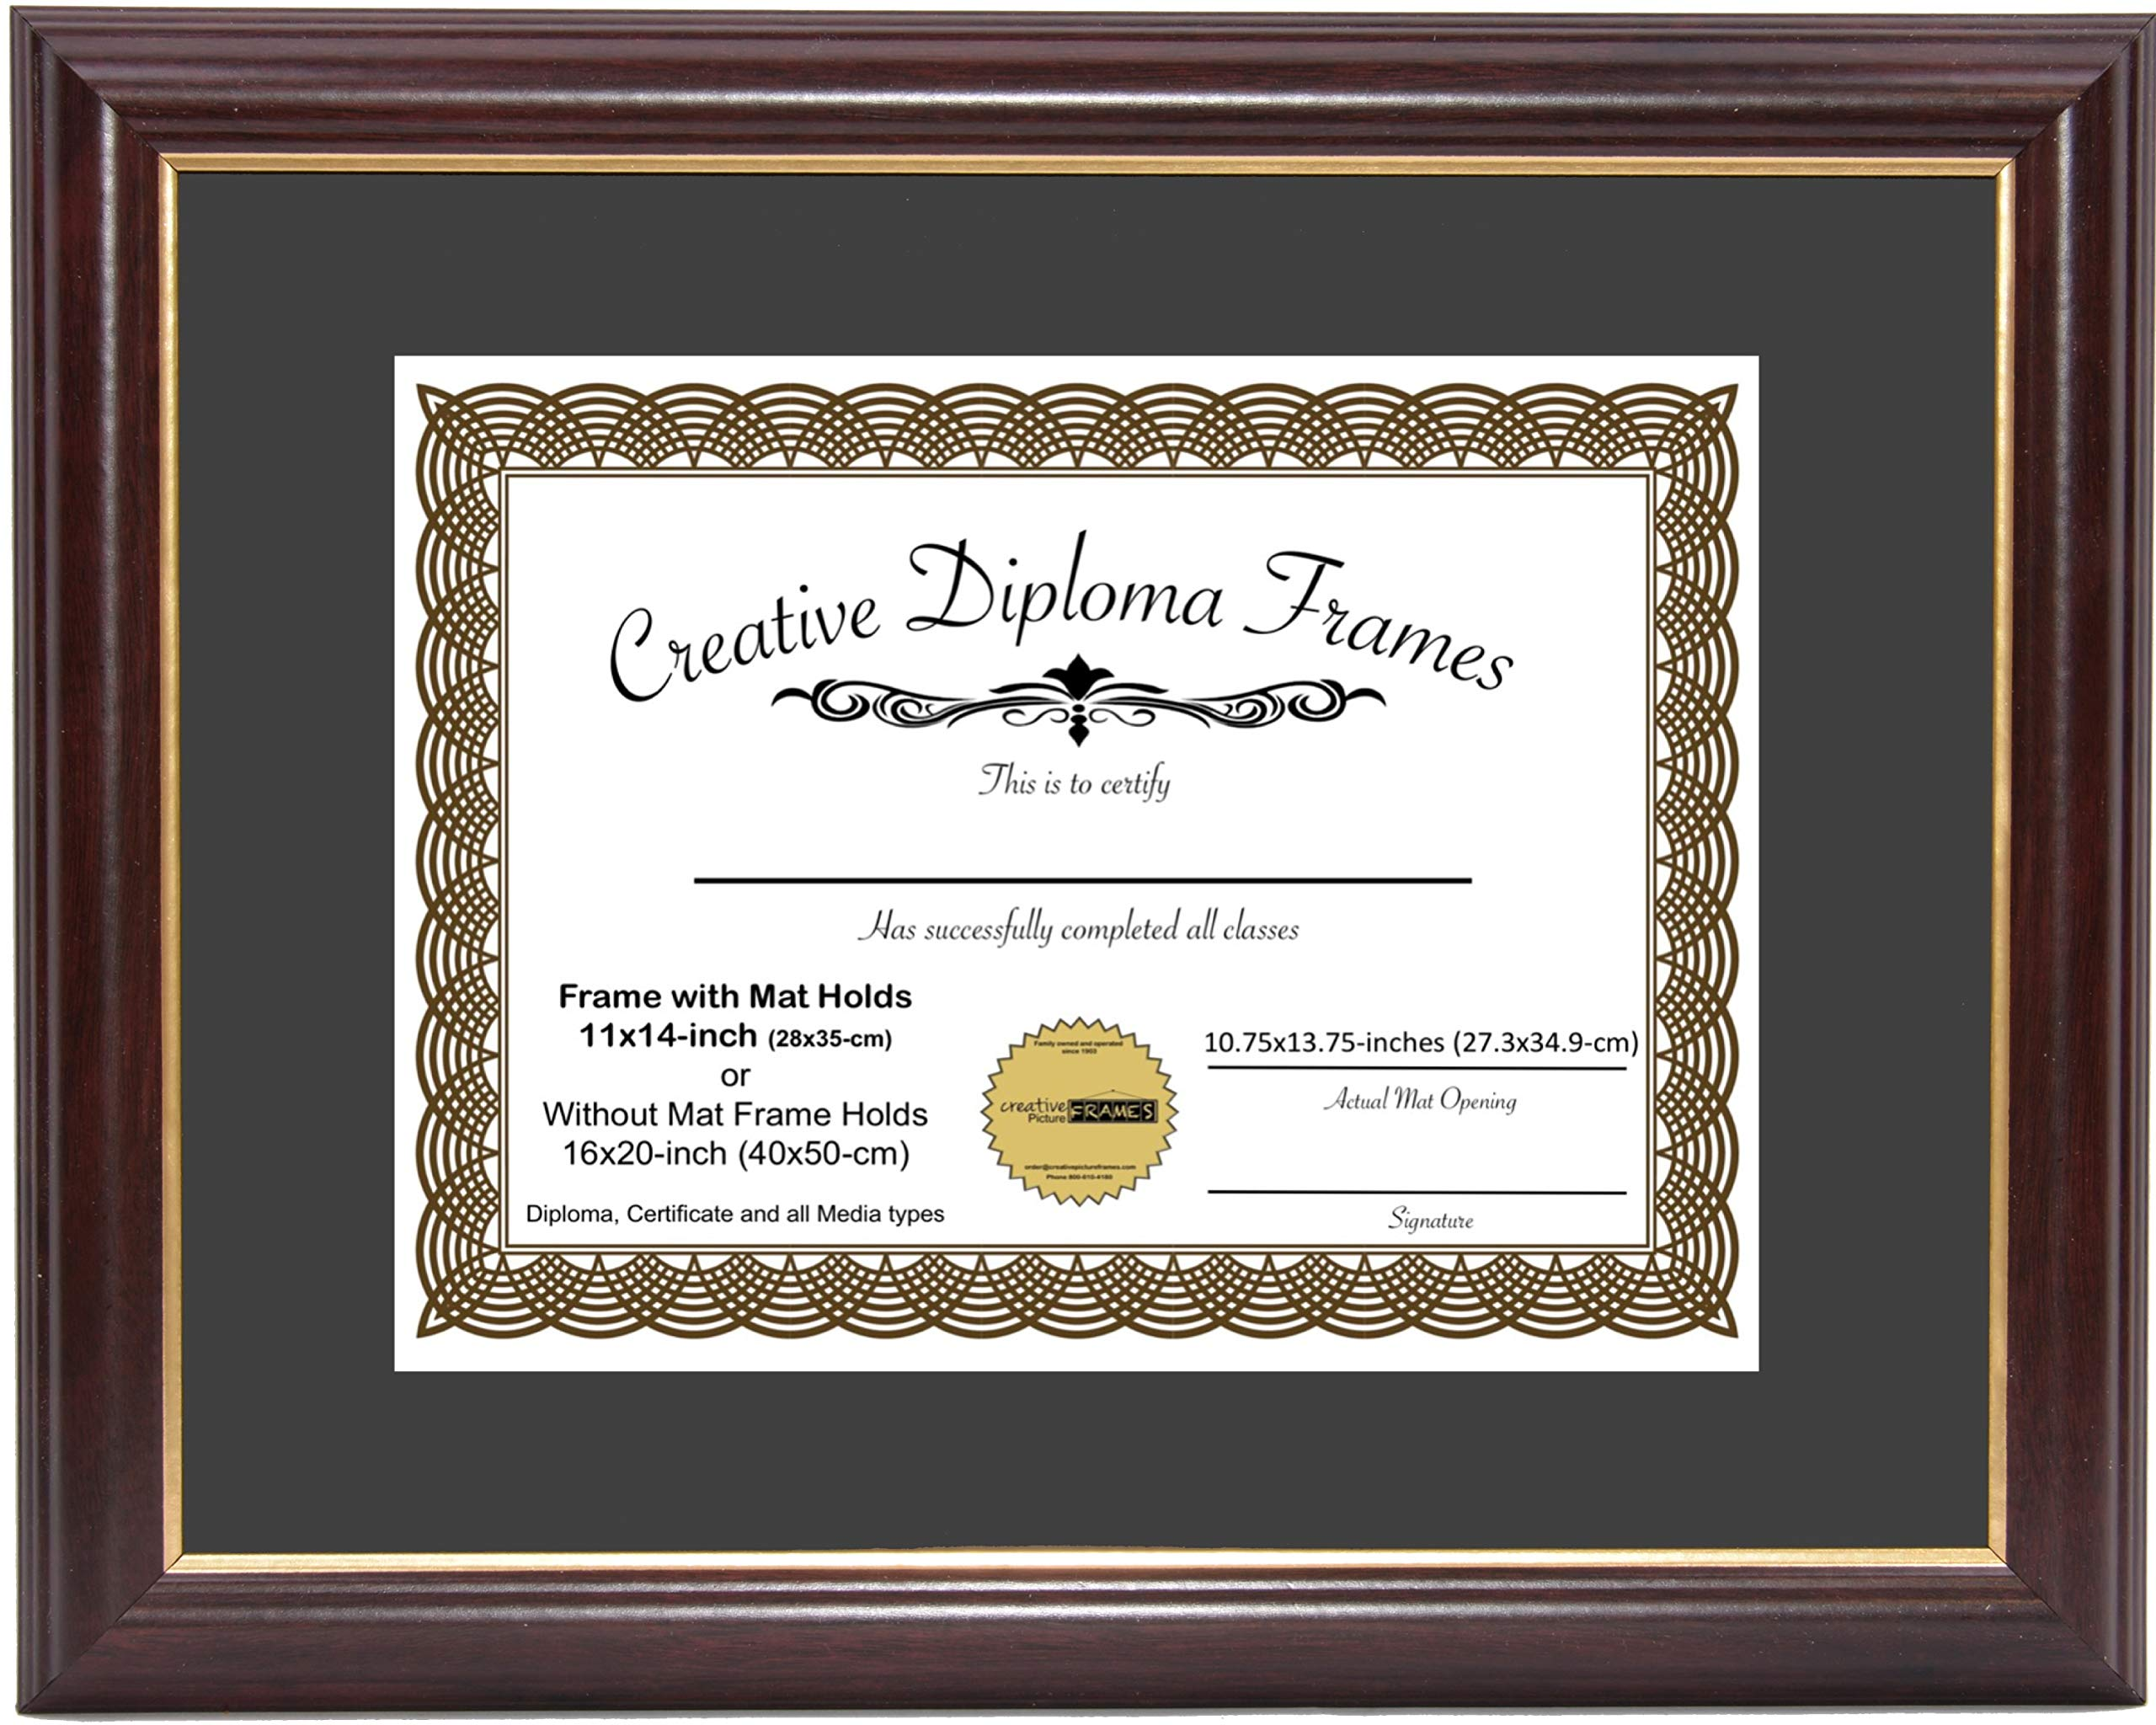 CreativePF [11x14-Diploma] Mahogany Frame with Gold Rim, Black Matting Holds 11x14-inch Documents with Glass and Installed Wall Hanger